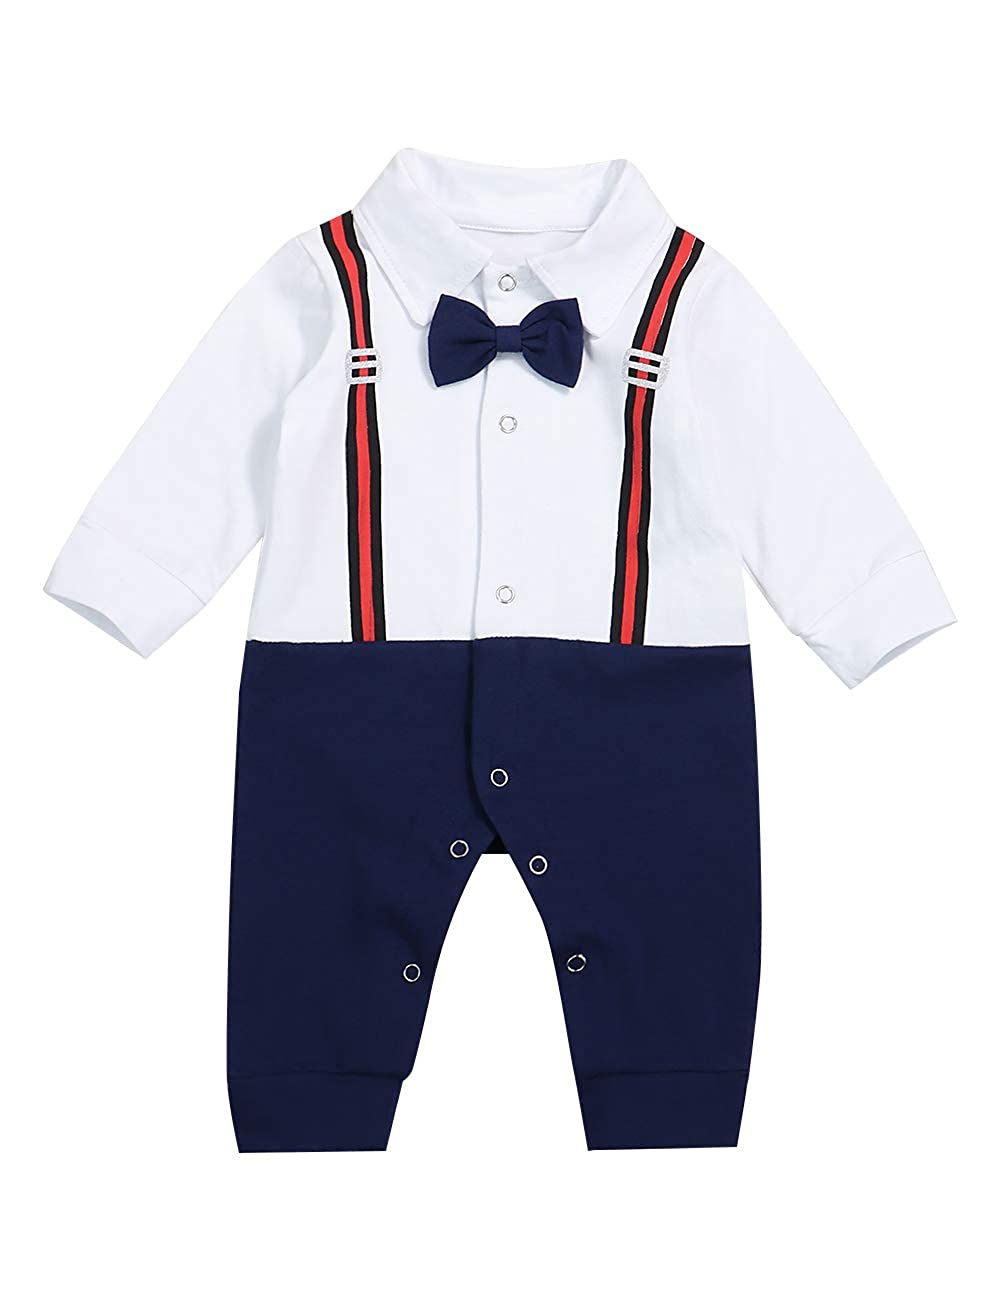 Baby Boy Gentleman Outfits Suits Infant Long Sleeve Romper Bib Pants Bow Tie Overalls Clothing Set